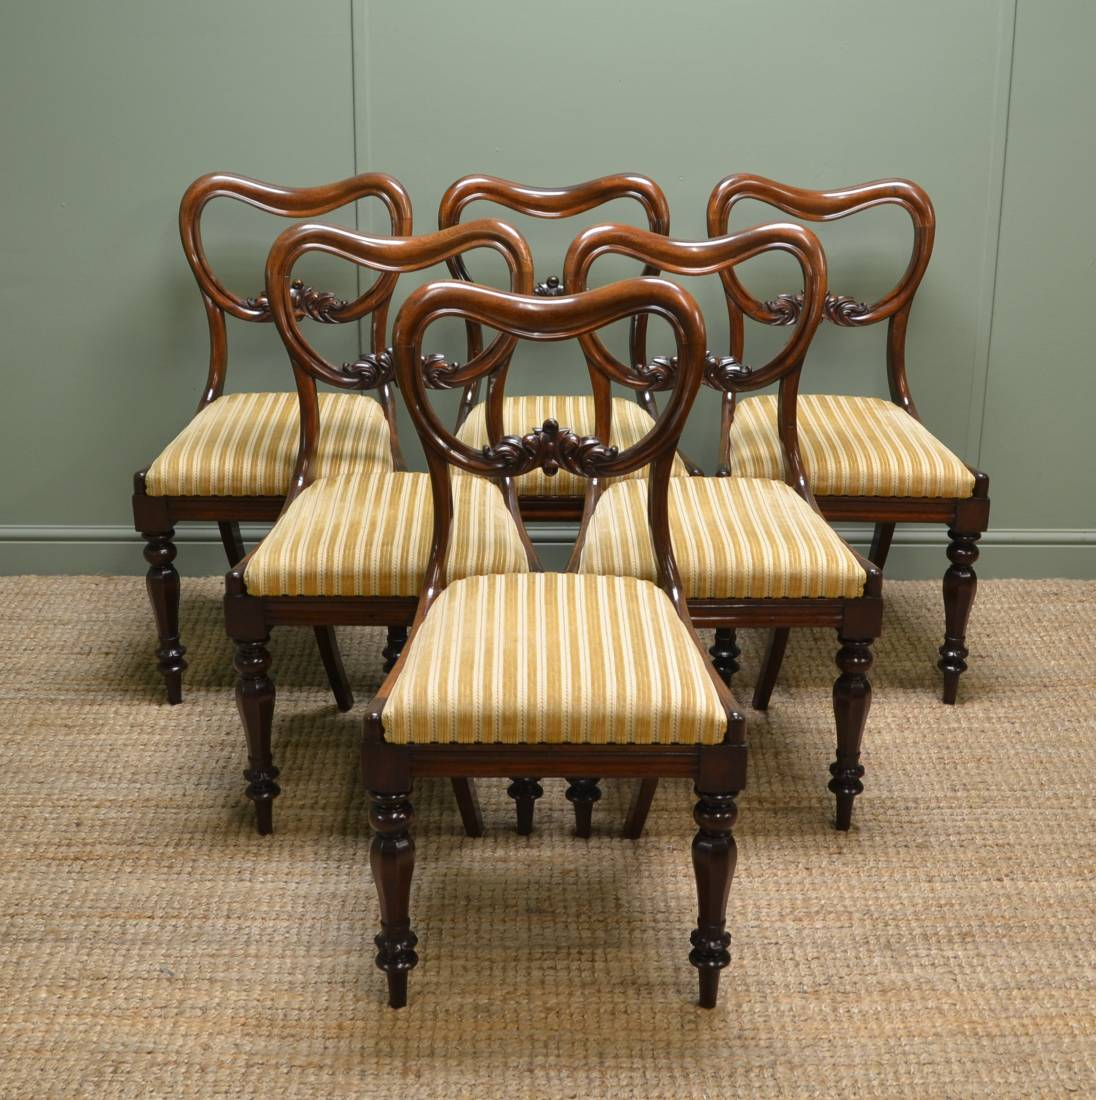 Beautiful set of Six Victorian Antique Balloon Back Chairs